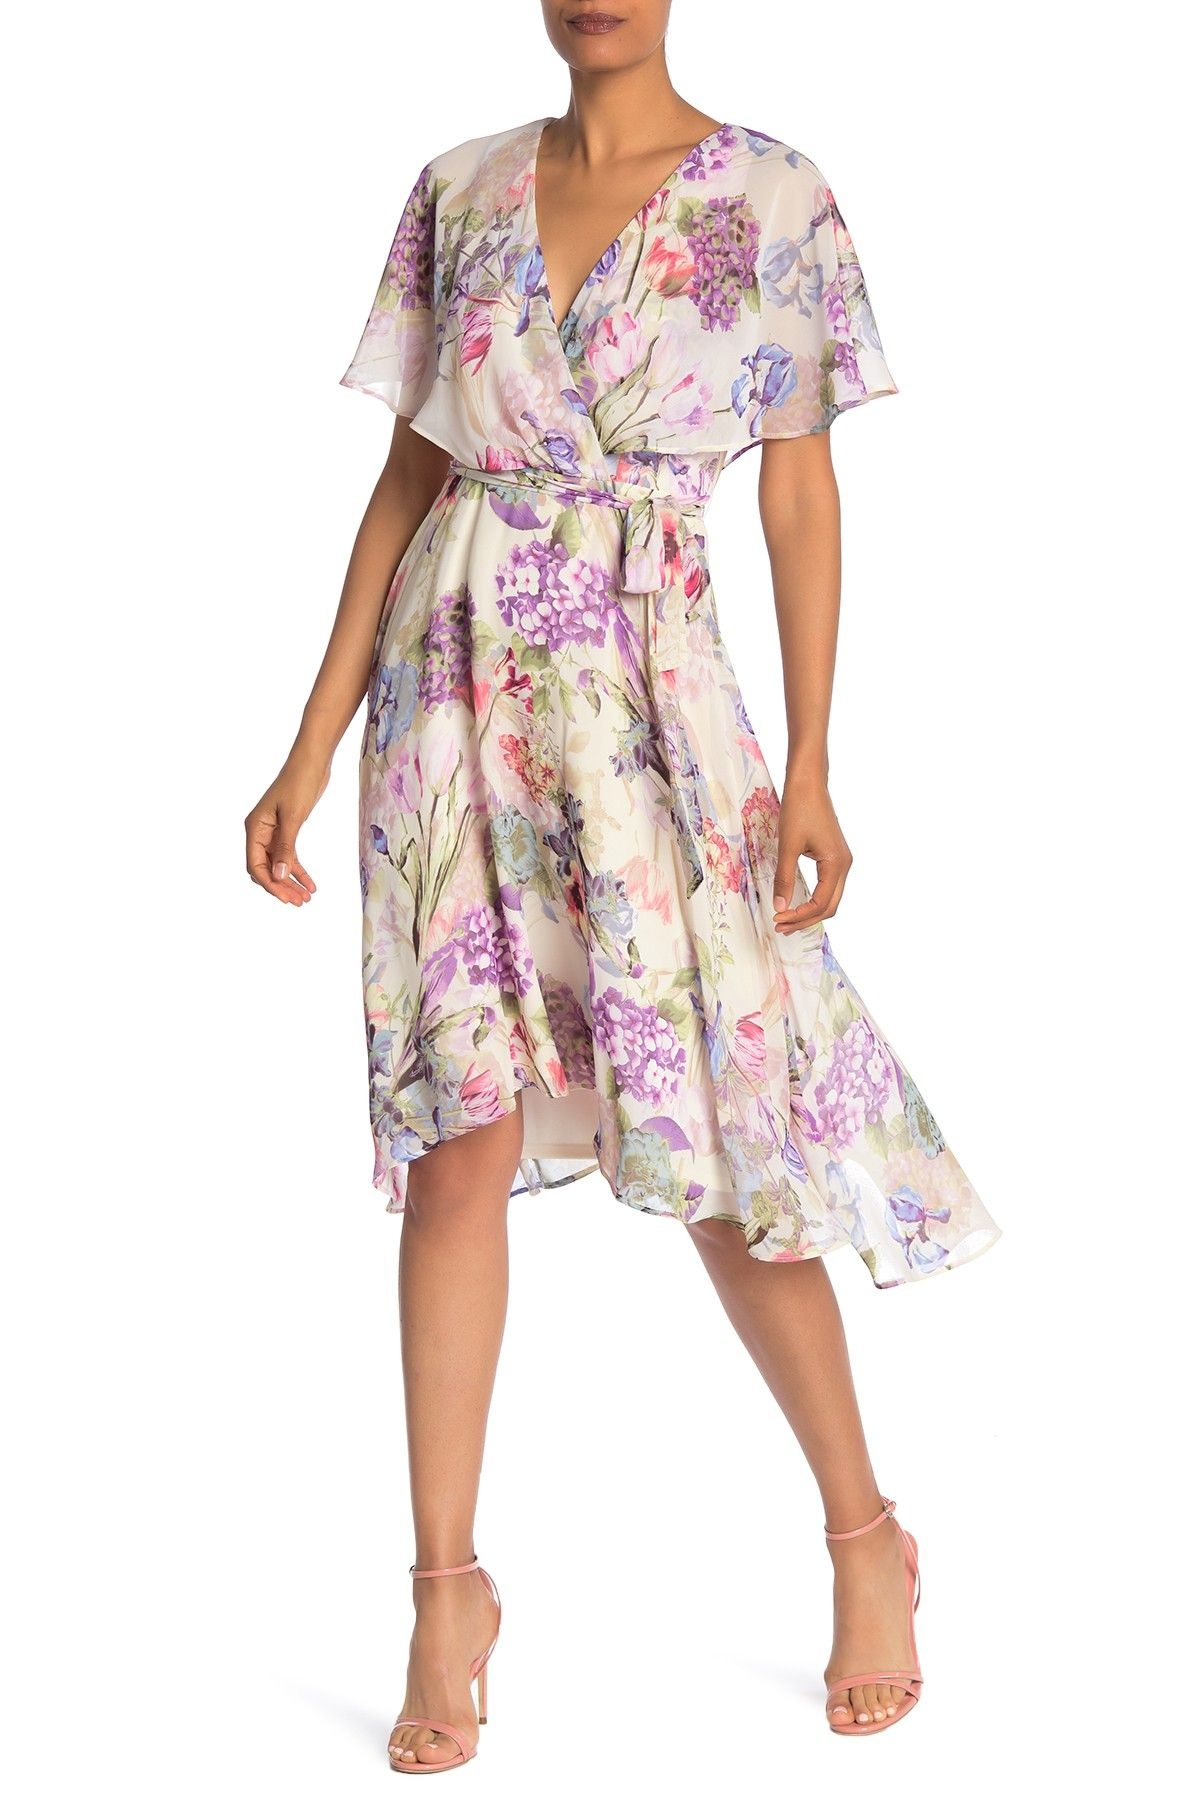 fd1ab5e07a Gabby Skye - Short Sleeve Floral Chiffon Dress is now 59% off. Free Shipping